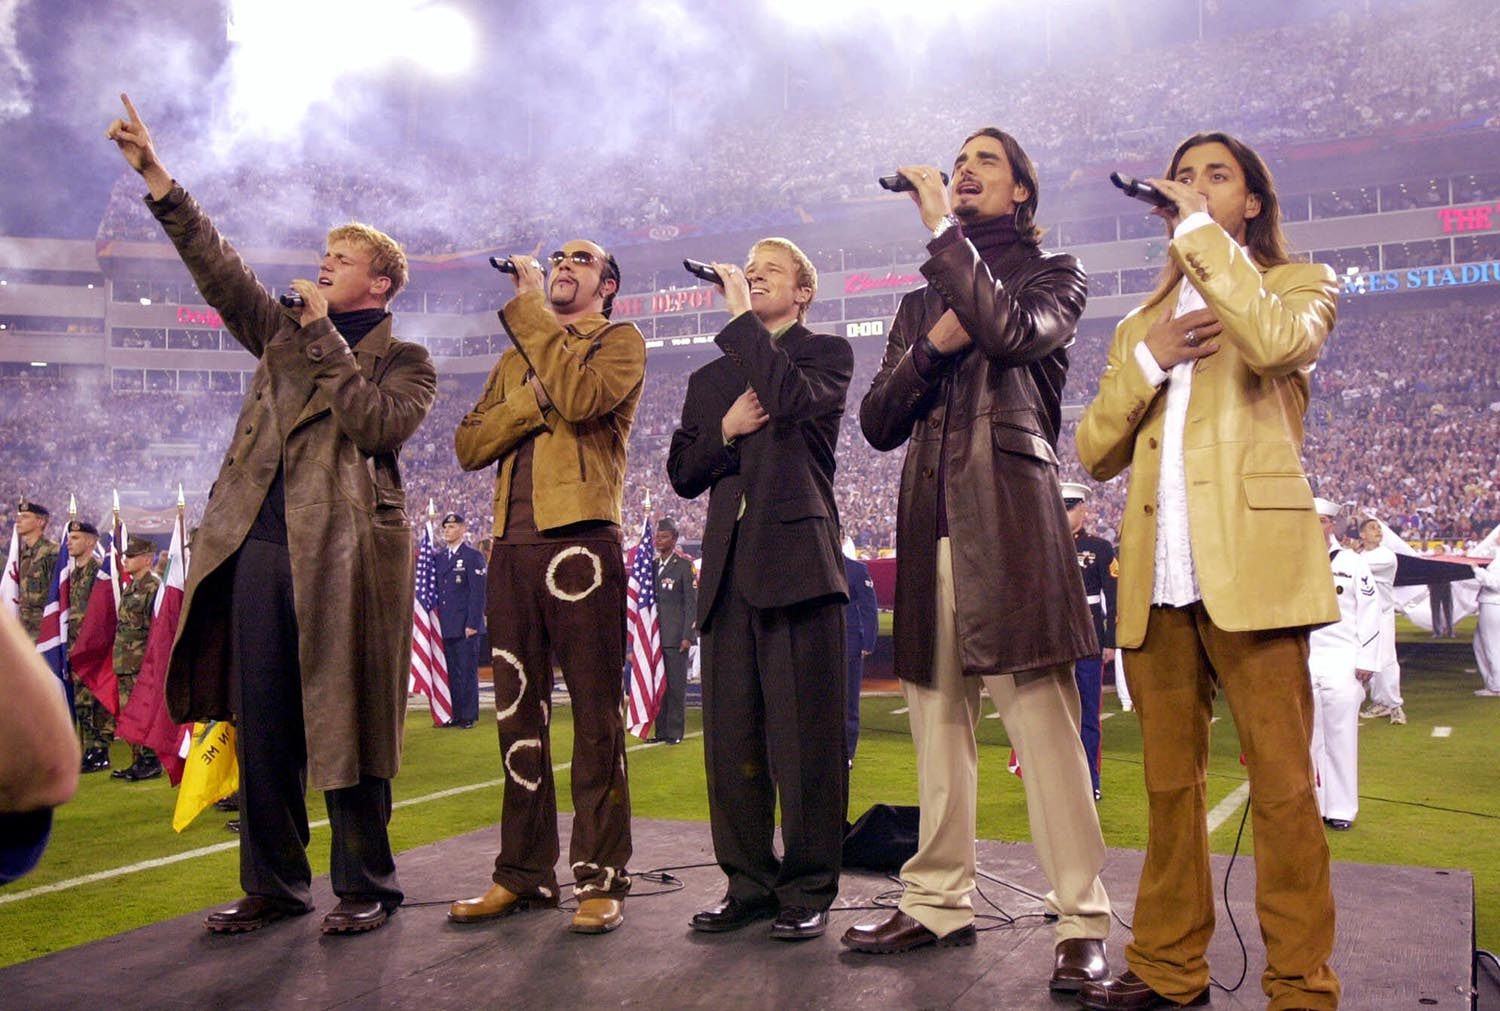 "<div class=""meta image-caption""><div class=""origin-logo origin-image ap""><span>AP</span></div><span class=""caption-text"">2001: The Backstreet Boys sing the national anthem before Super Bowl XXXV on Sunday, Jan. 28, 2001, in Tampa, Fla. (AP Photo/Dave Martin)</span></div>"